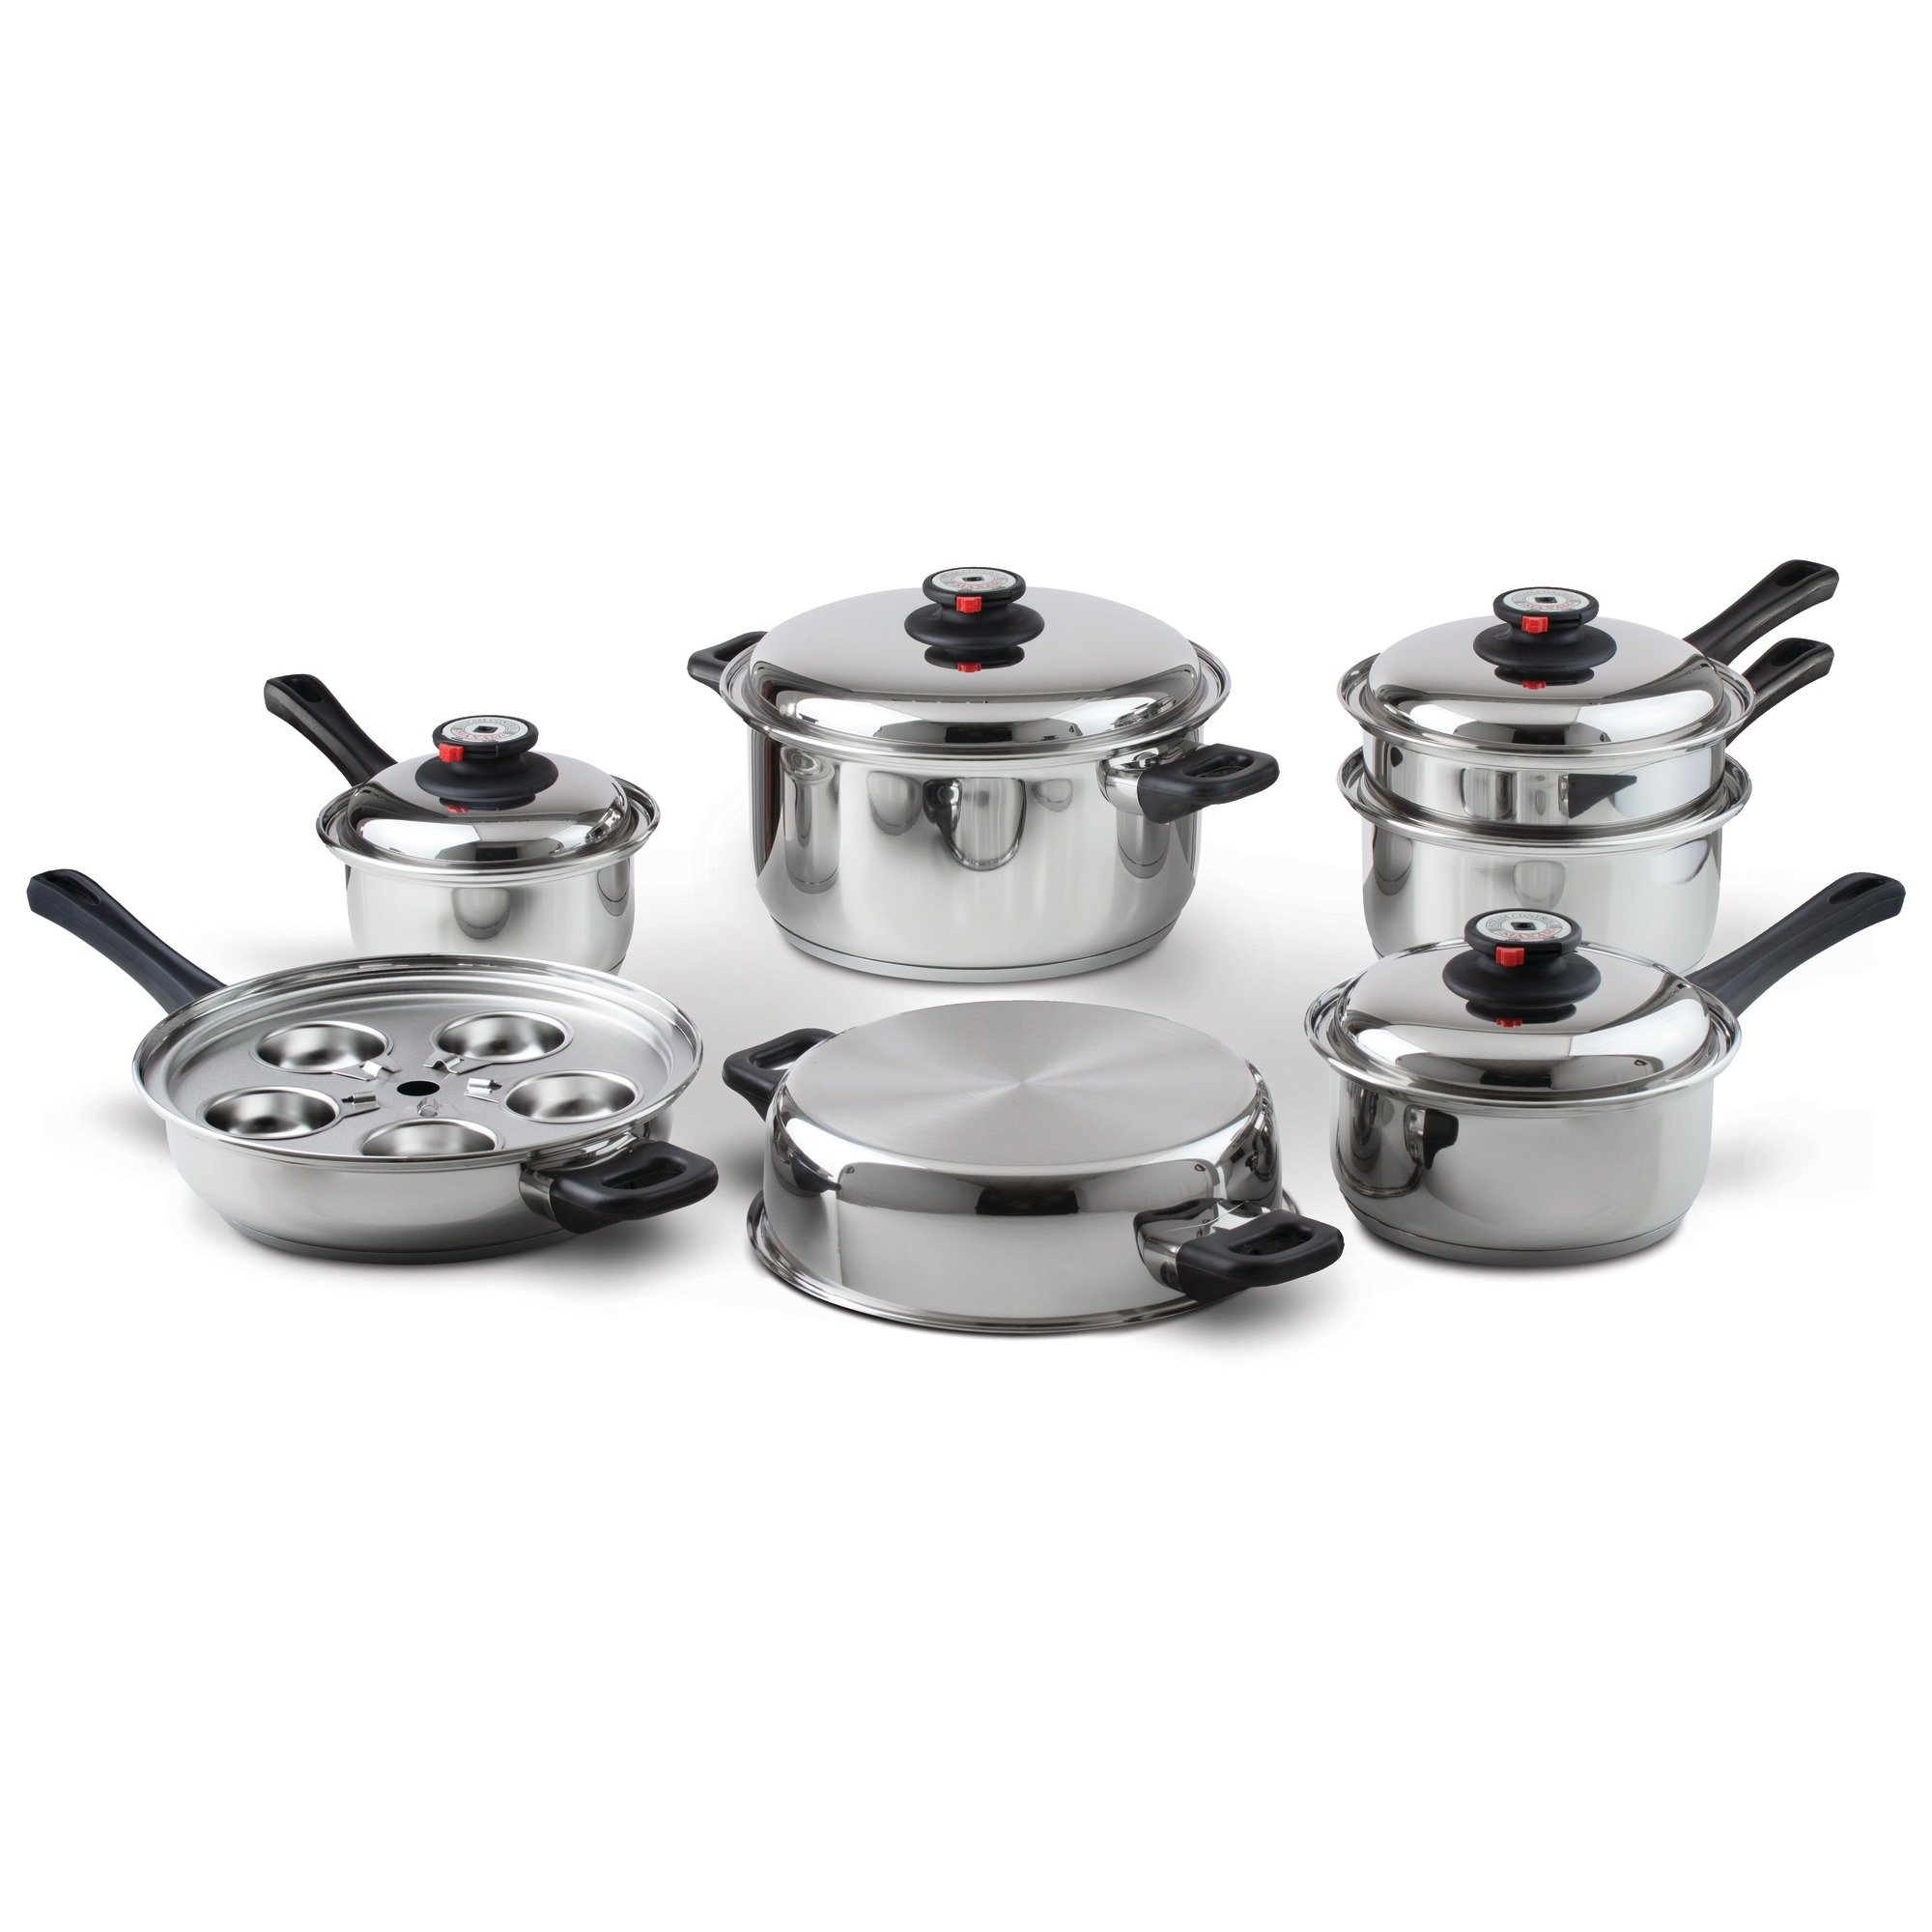 Maxam 9-Element Waterless Cookware Set, Durable Stainless Steel Construction with Heat and Cold Resistant Handles, 17-Pieces by Maxam